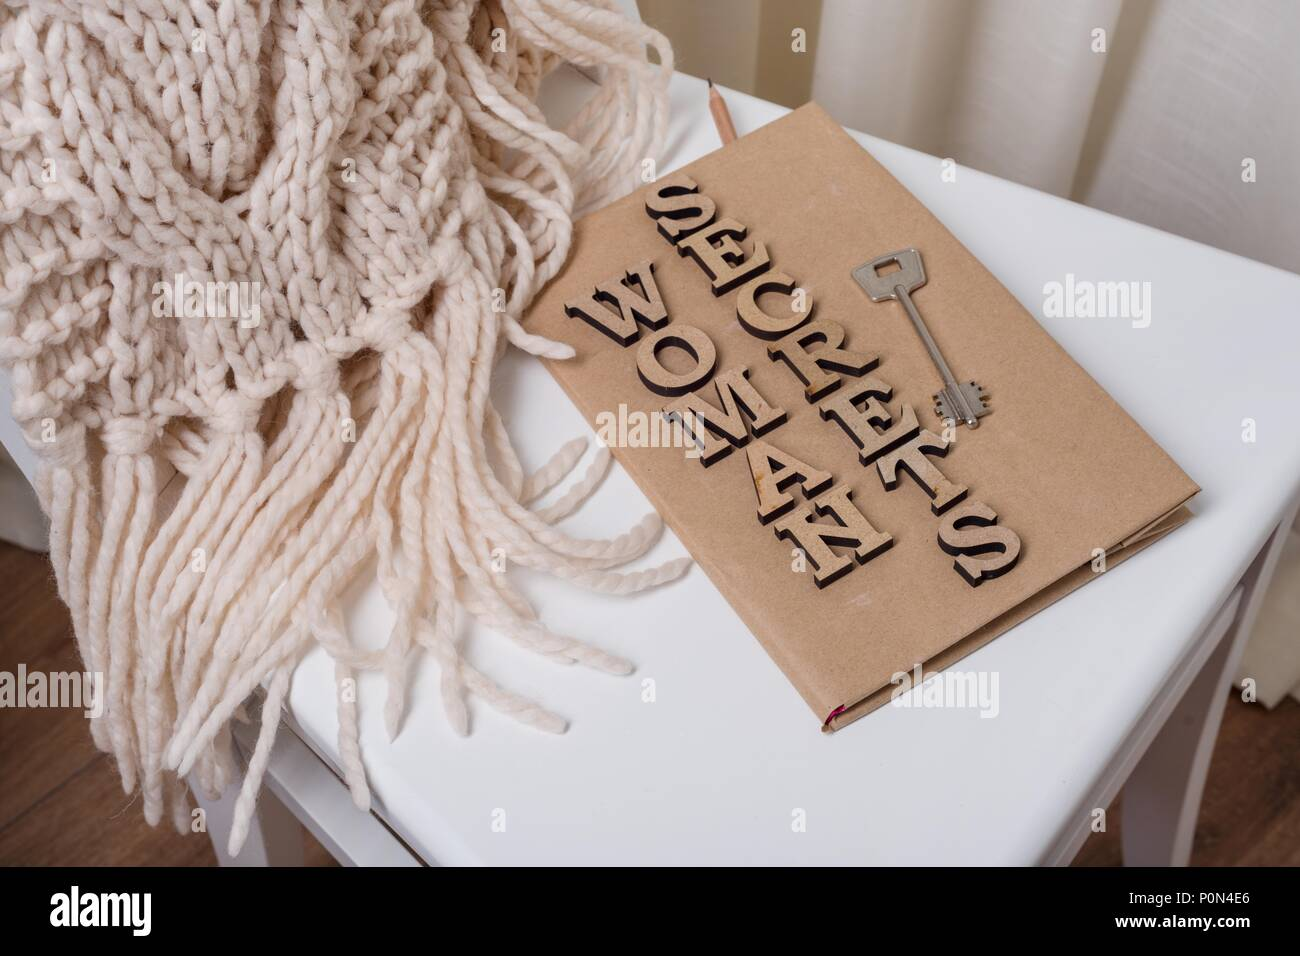 The book is wrapped in old paper and signed with wooden letters woman secrets, on the book key. White background chair in the interior of the house. - Stock Image